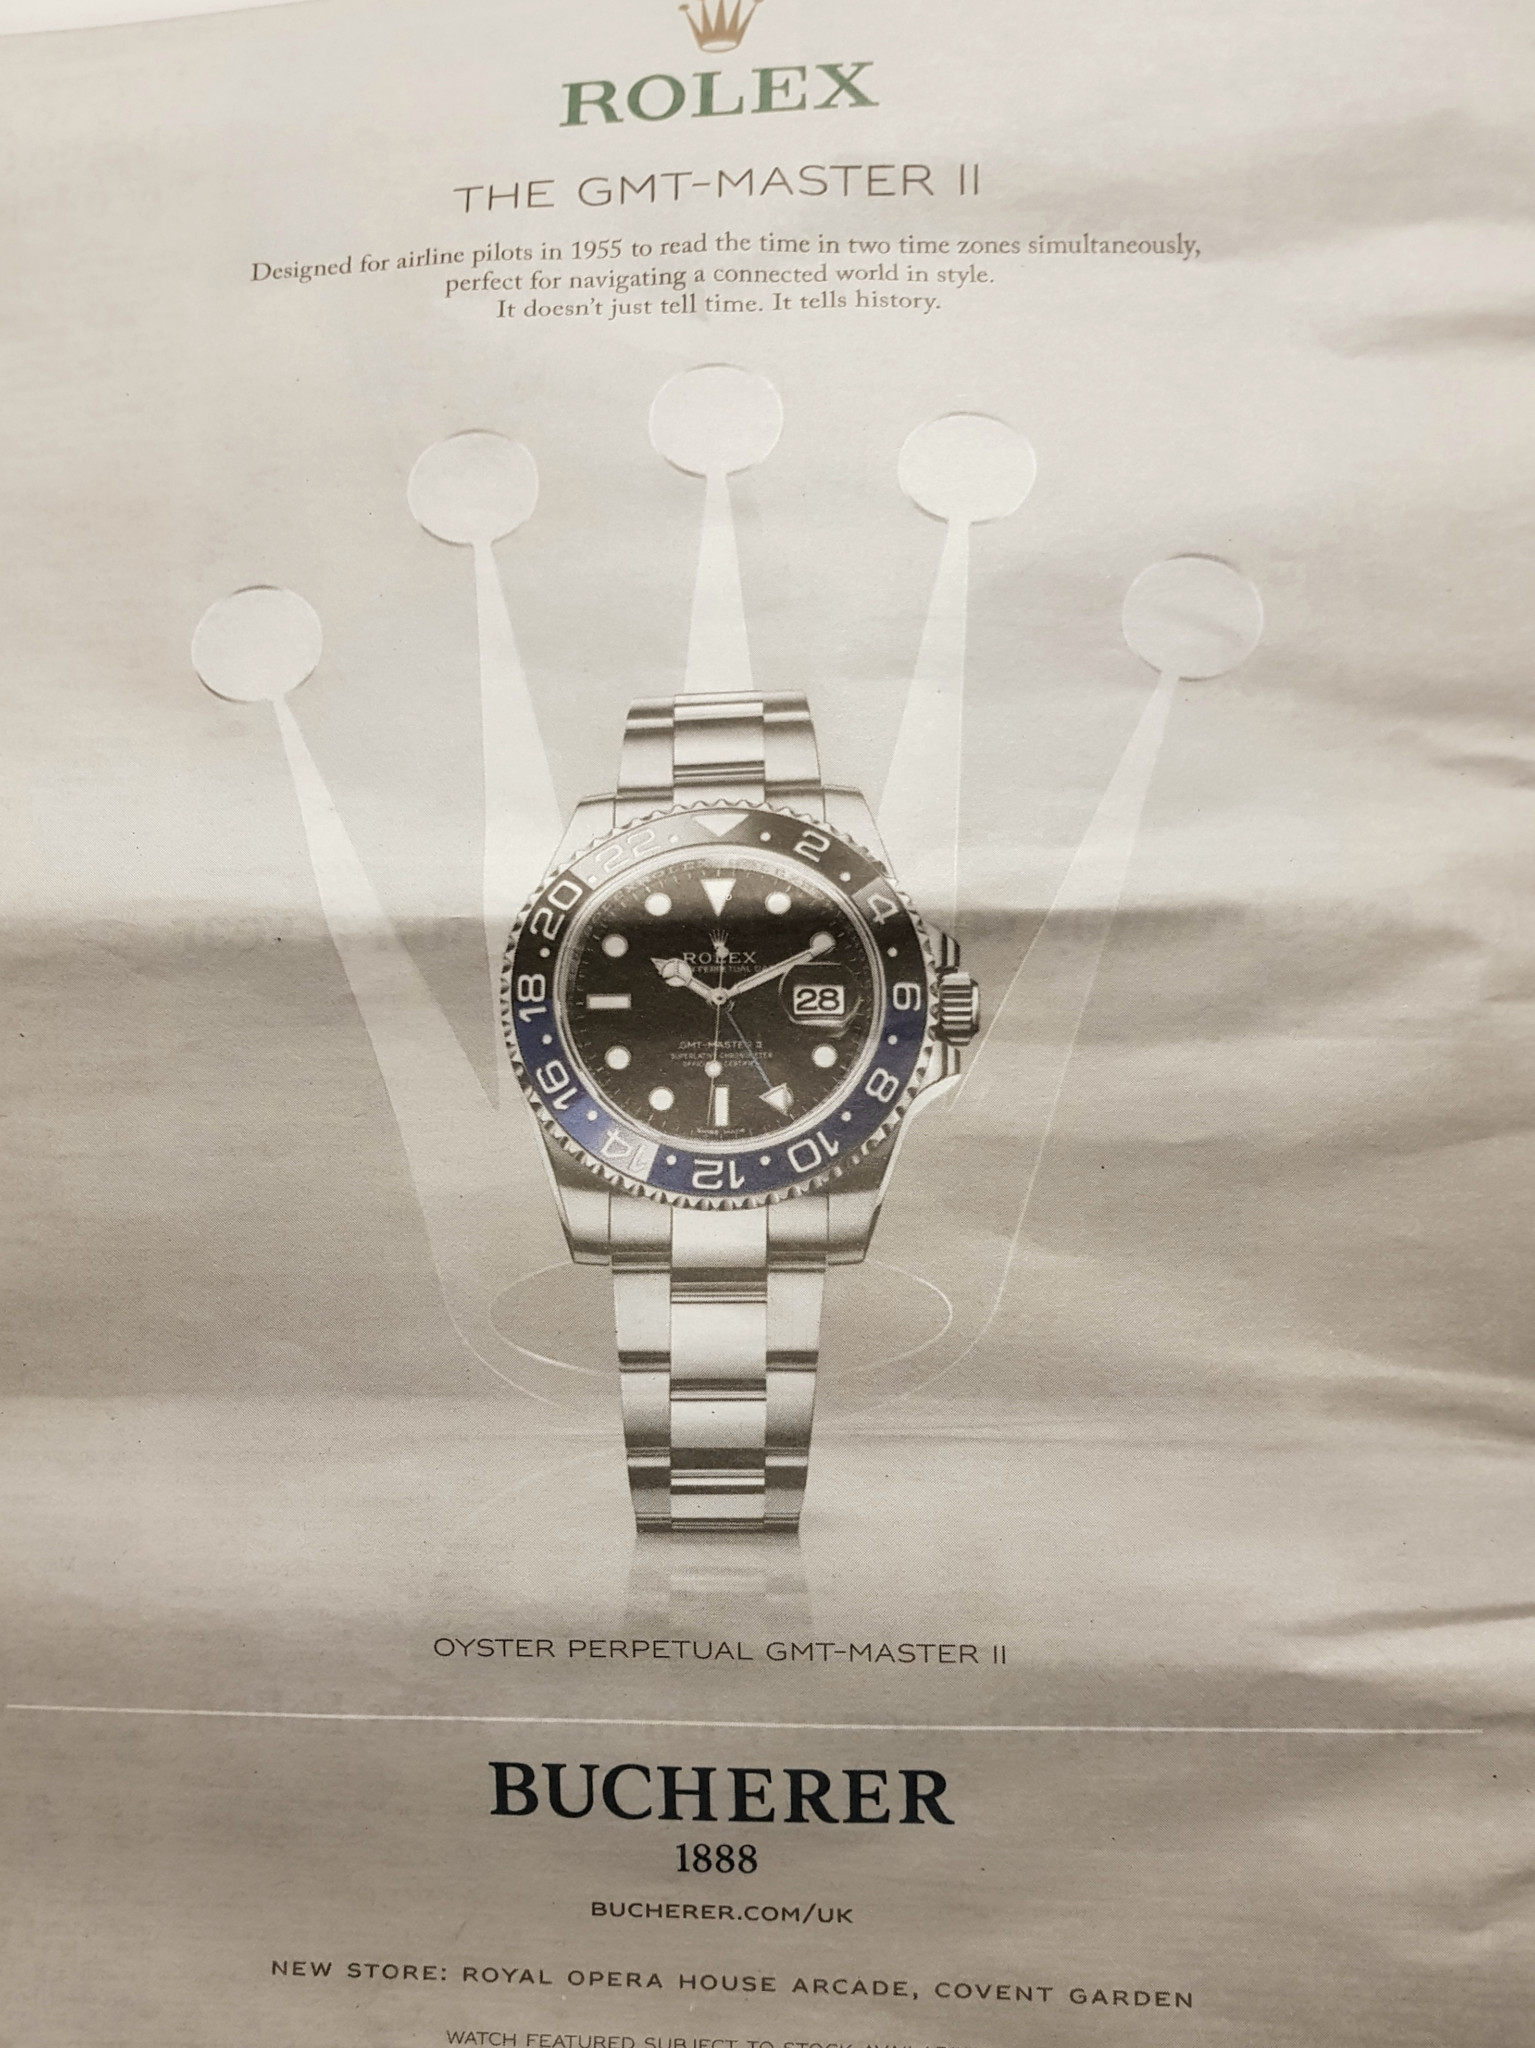 Bucherer Rolex advert